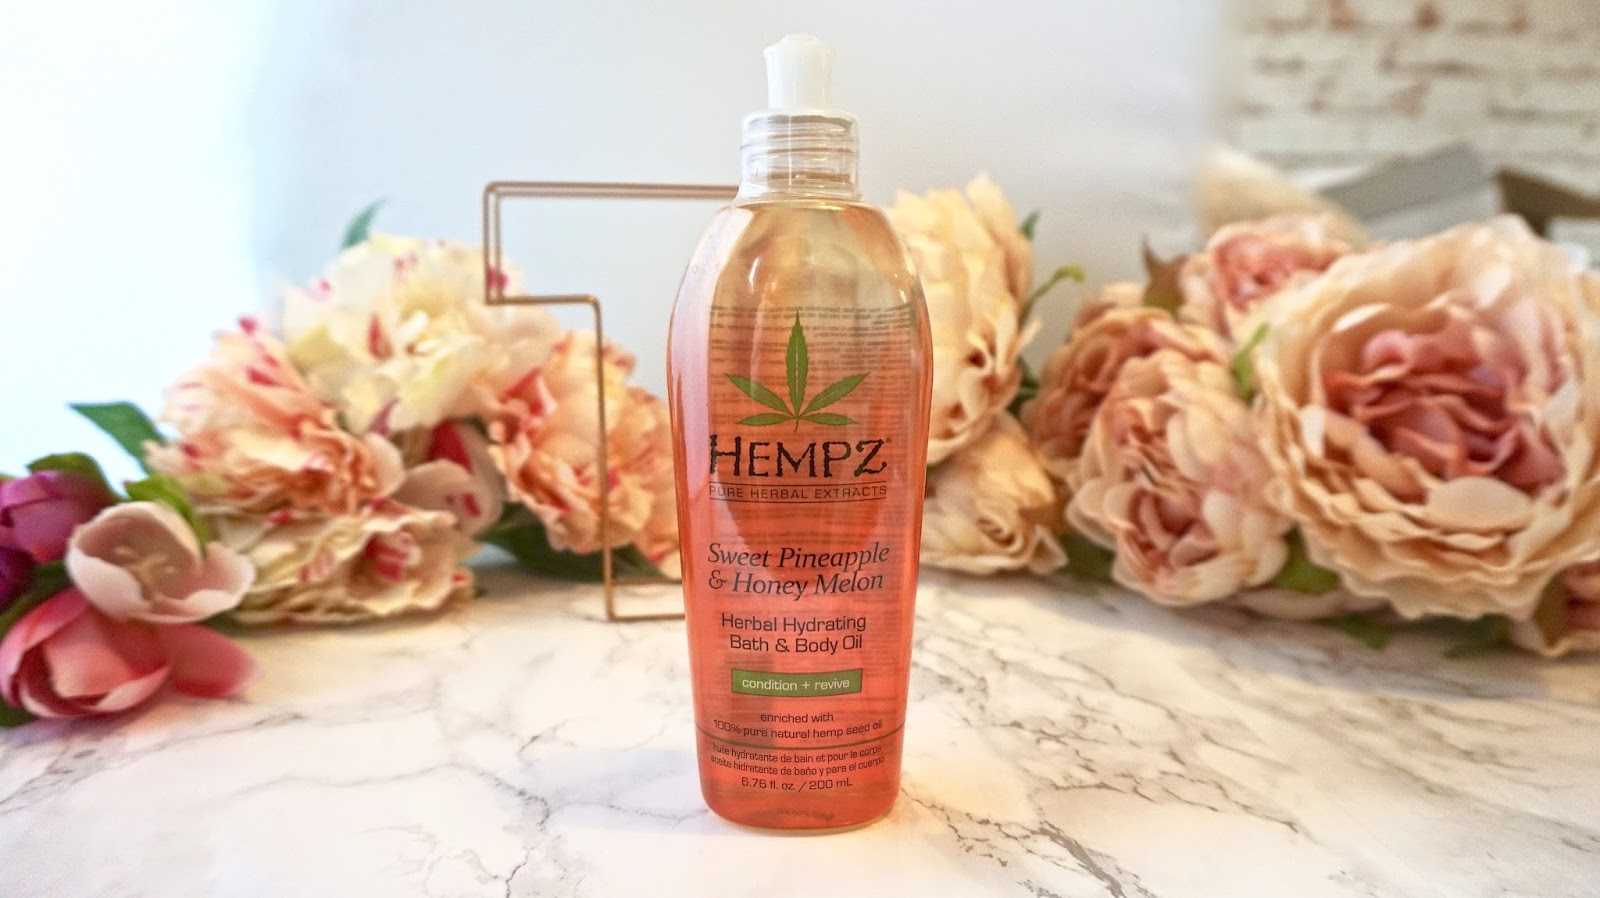 Hempz Sweet Pineapple & Honey Melon Bath & Body Oil